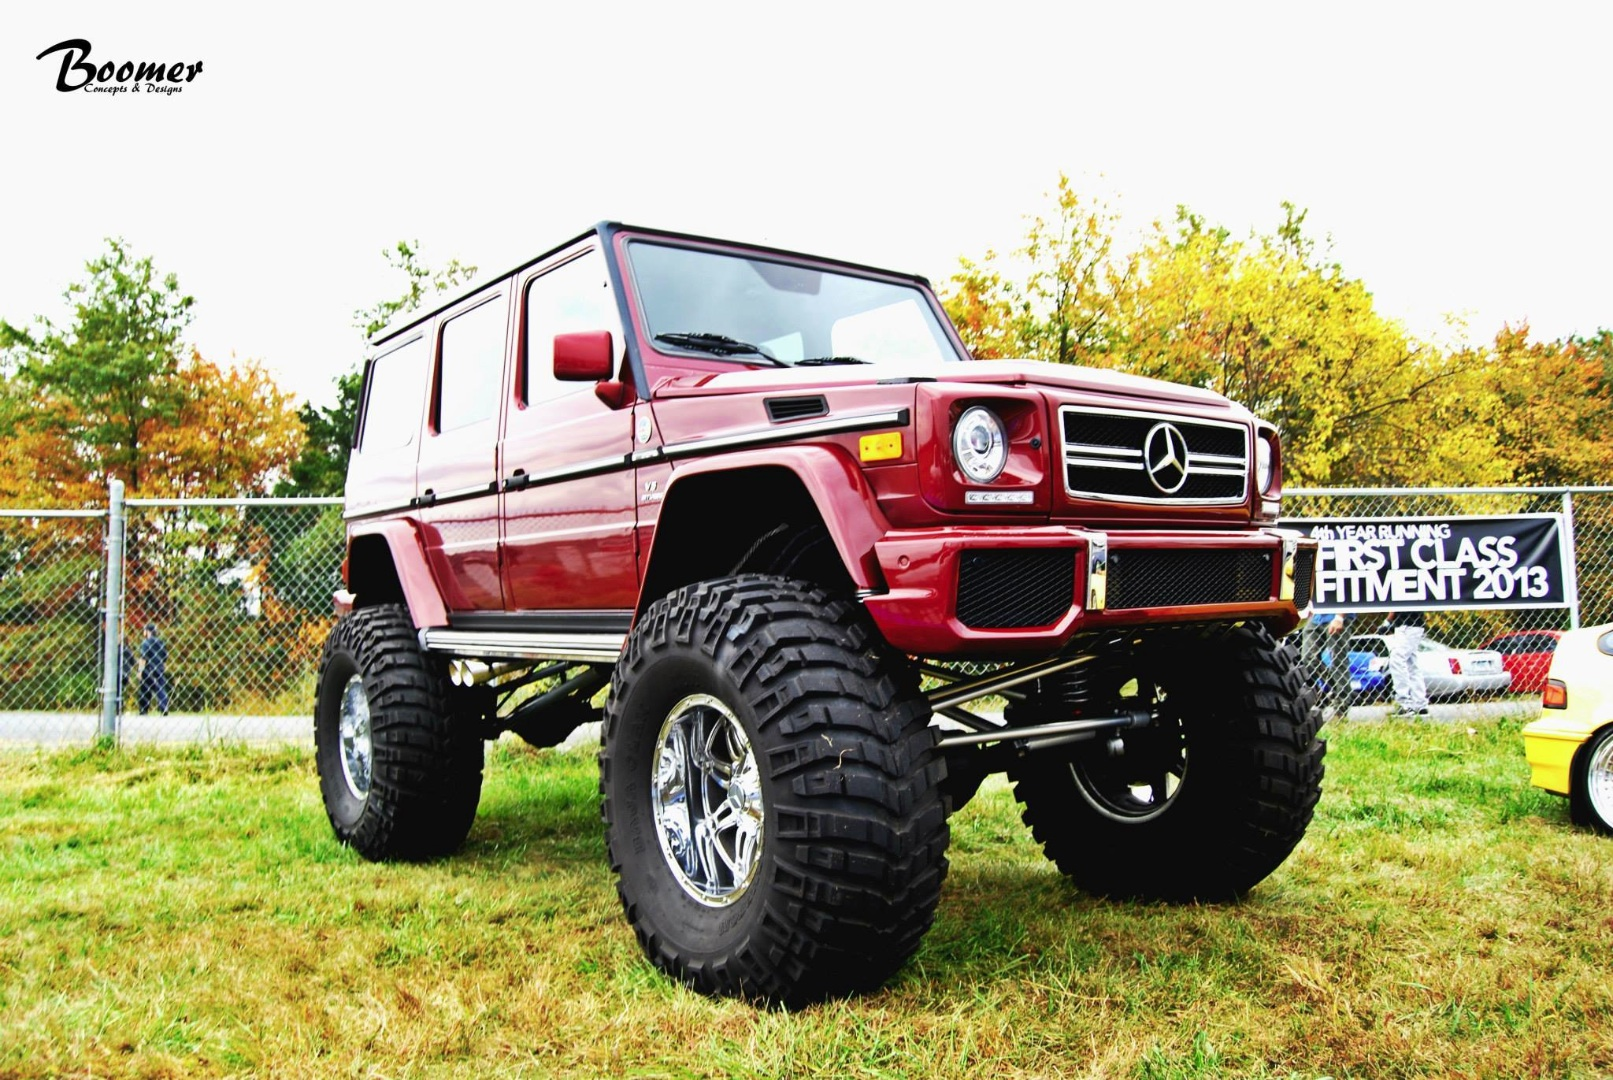 This G Class Wants To Become A Monster Truck Autoevolution